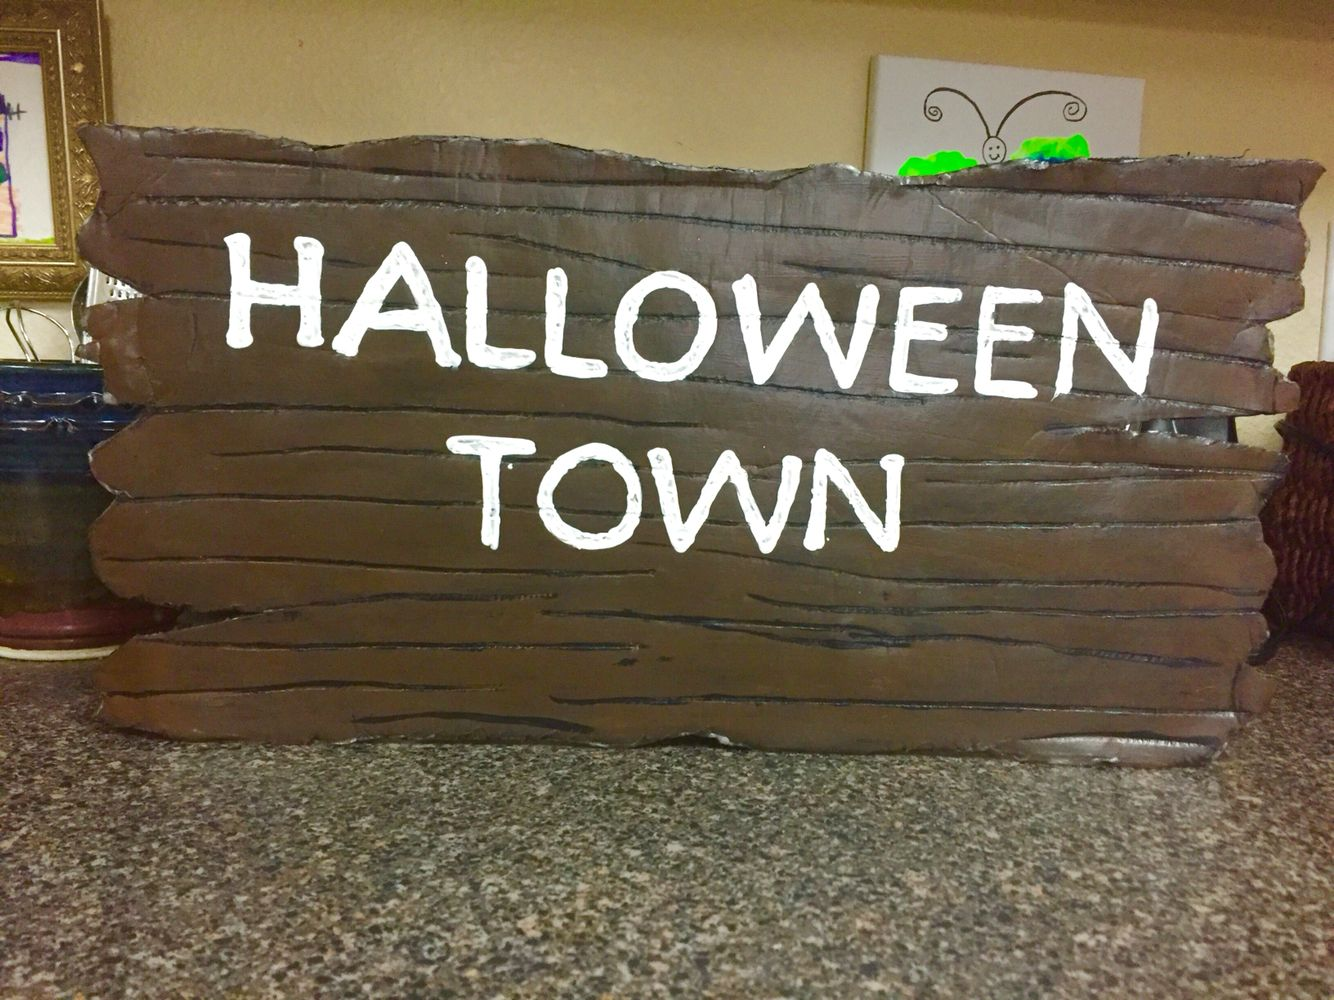 nightmare before christmas decorations halloween town sign made from foam board and paint used scissors to indent sign to look like wood